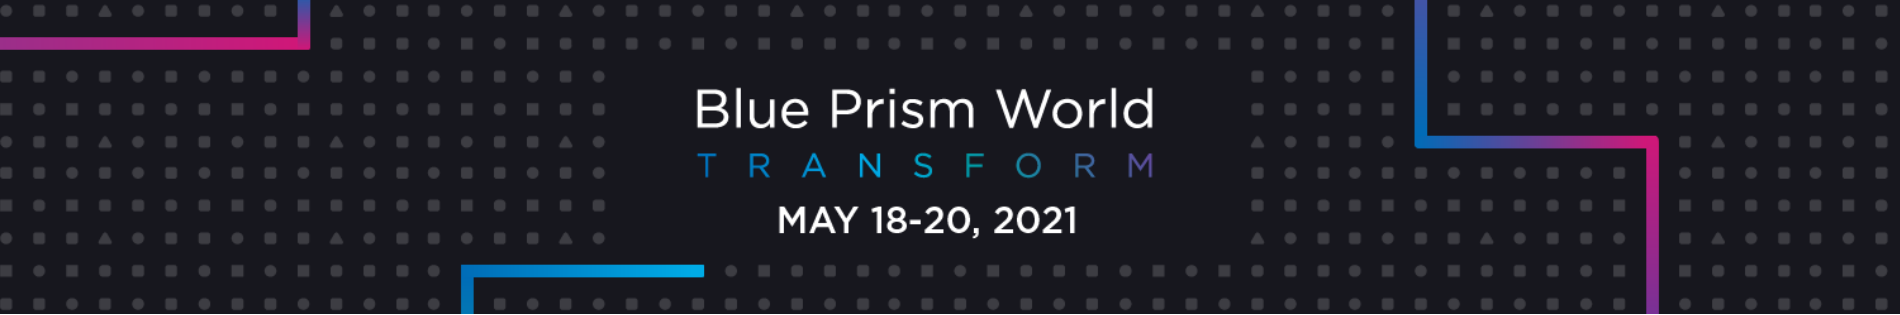 Blue Prism World: Transform May 18-20, 2021